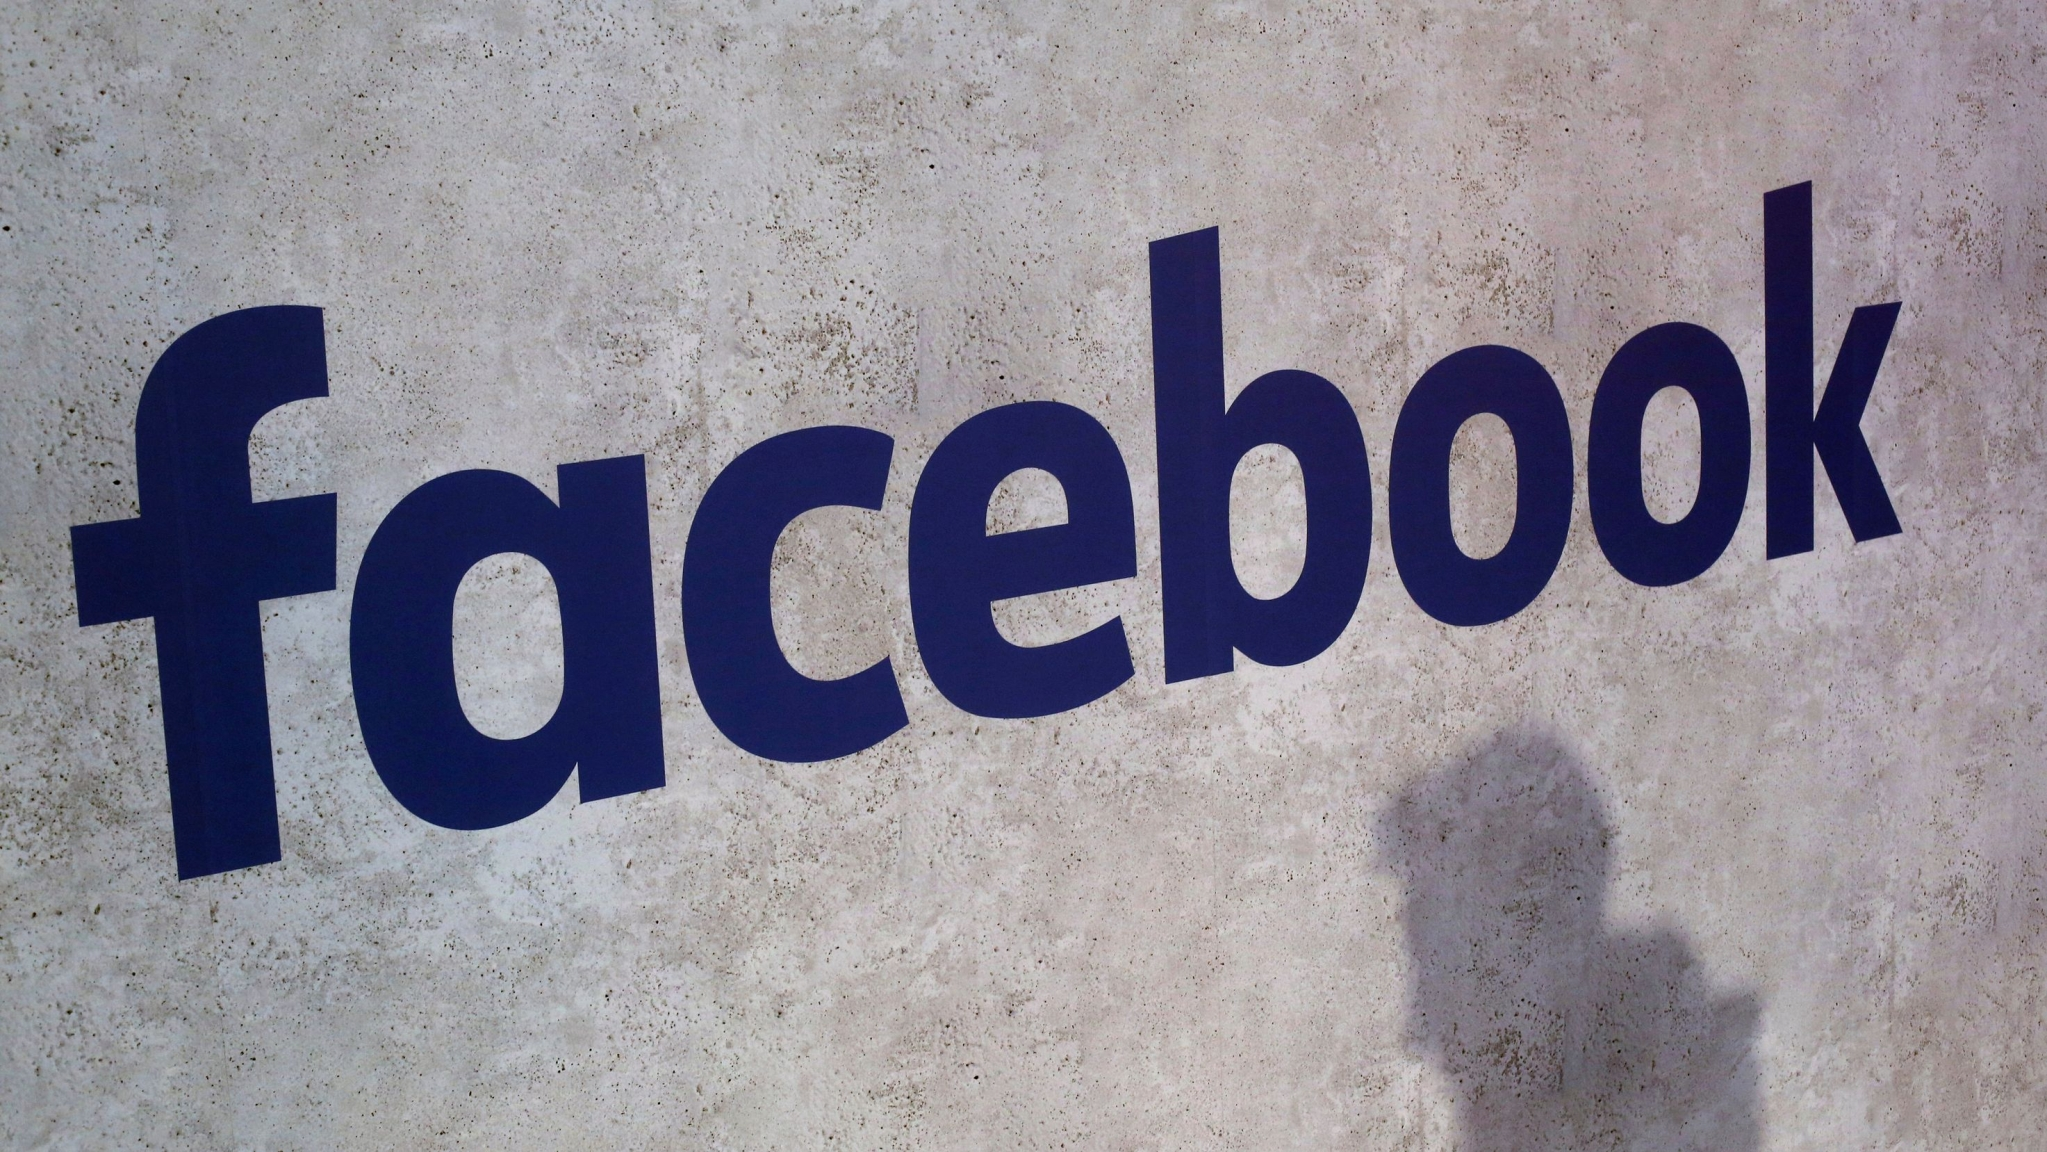 Facebook Says It Removed 3.2 Billion Fake Accounts in 6 Months